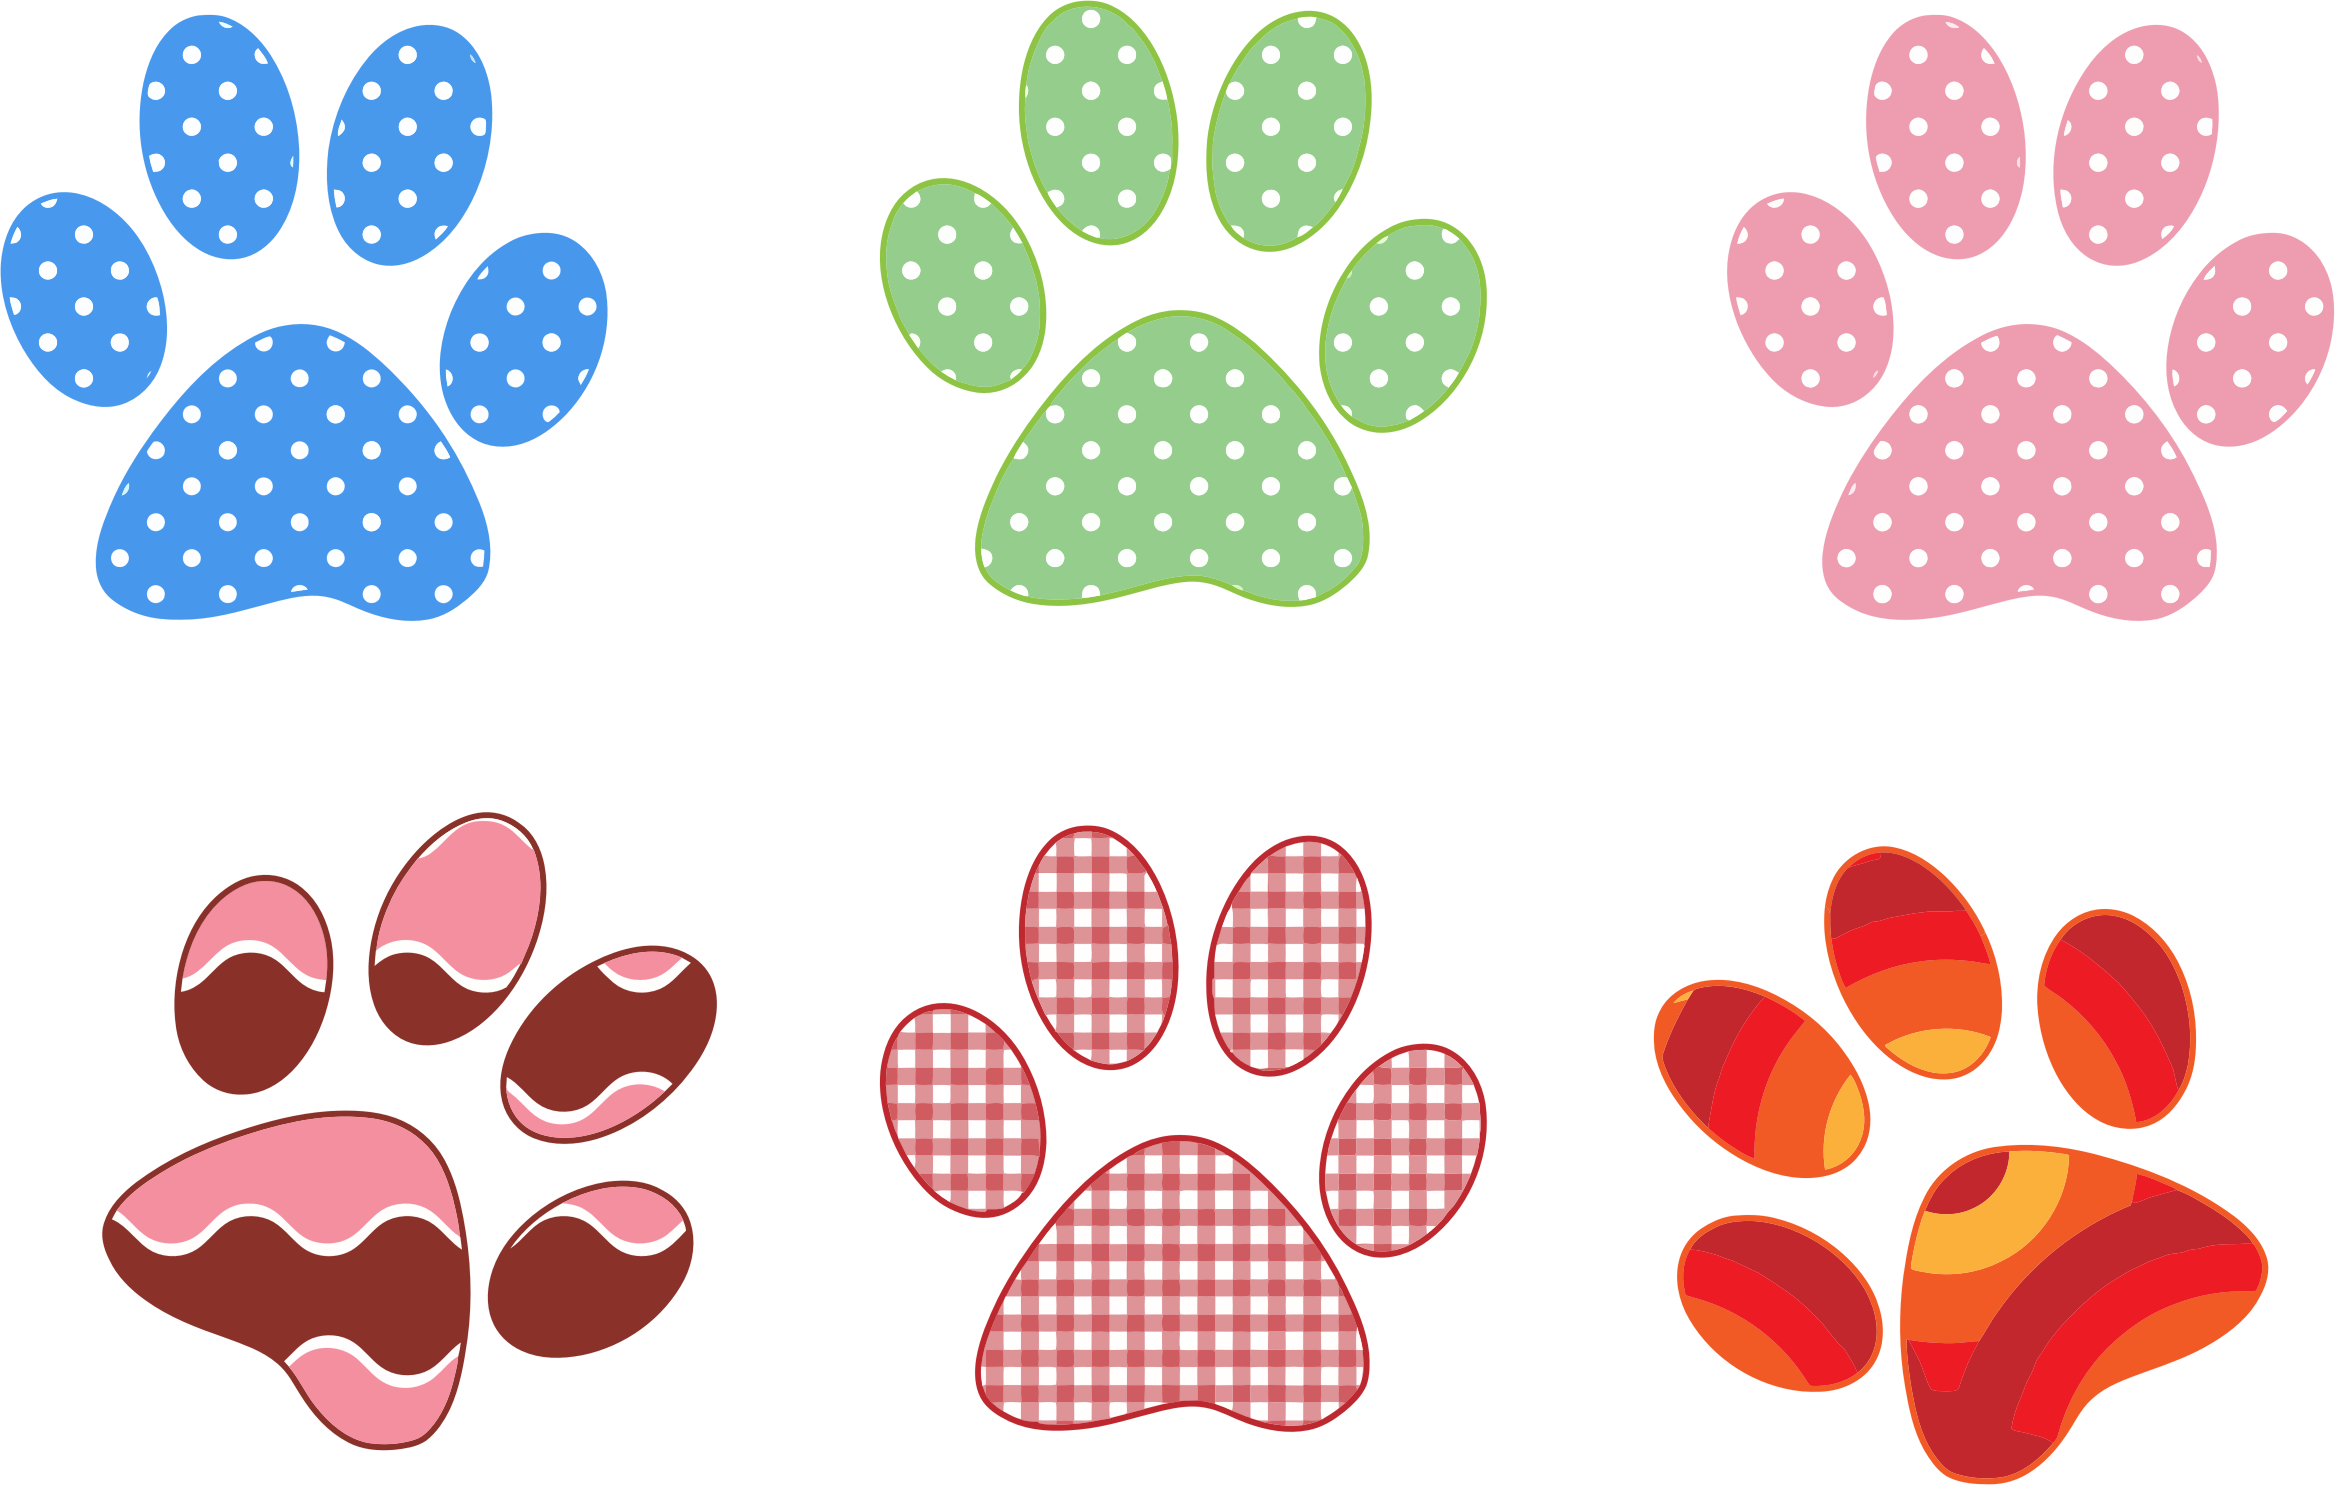 Prints icons png free. Paw clip art colorful jpg royalty free stock